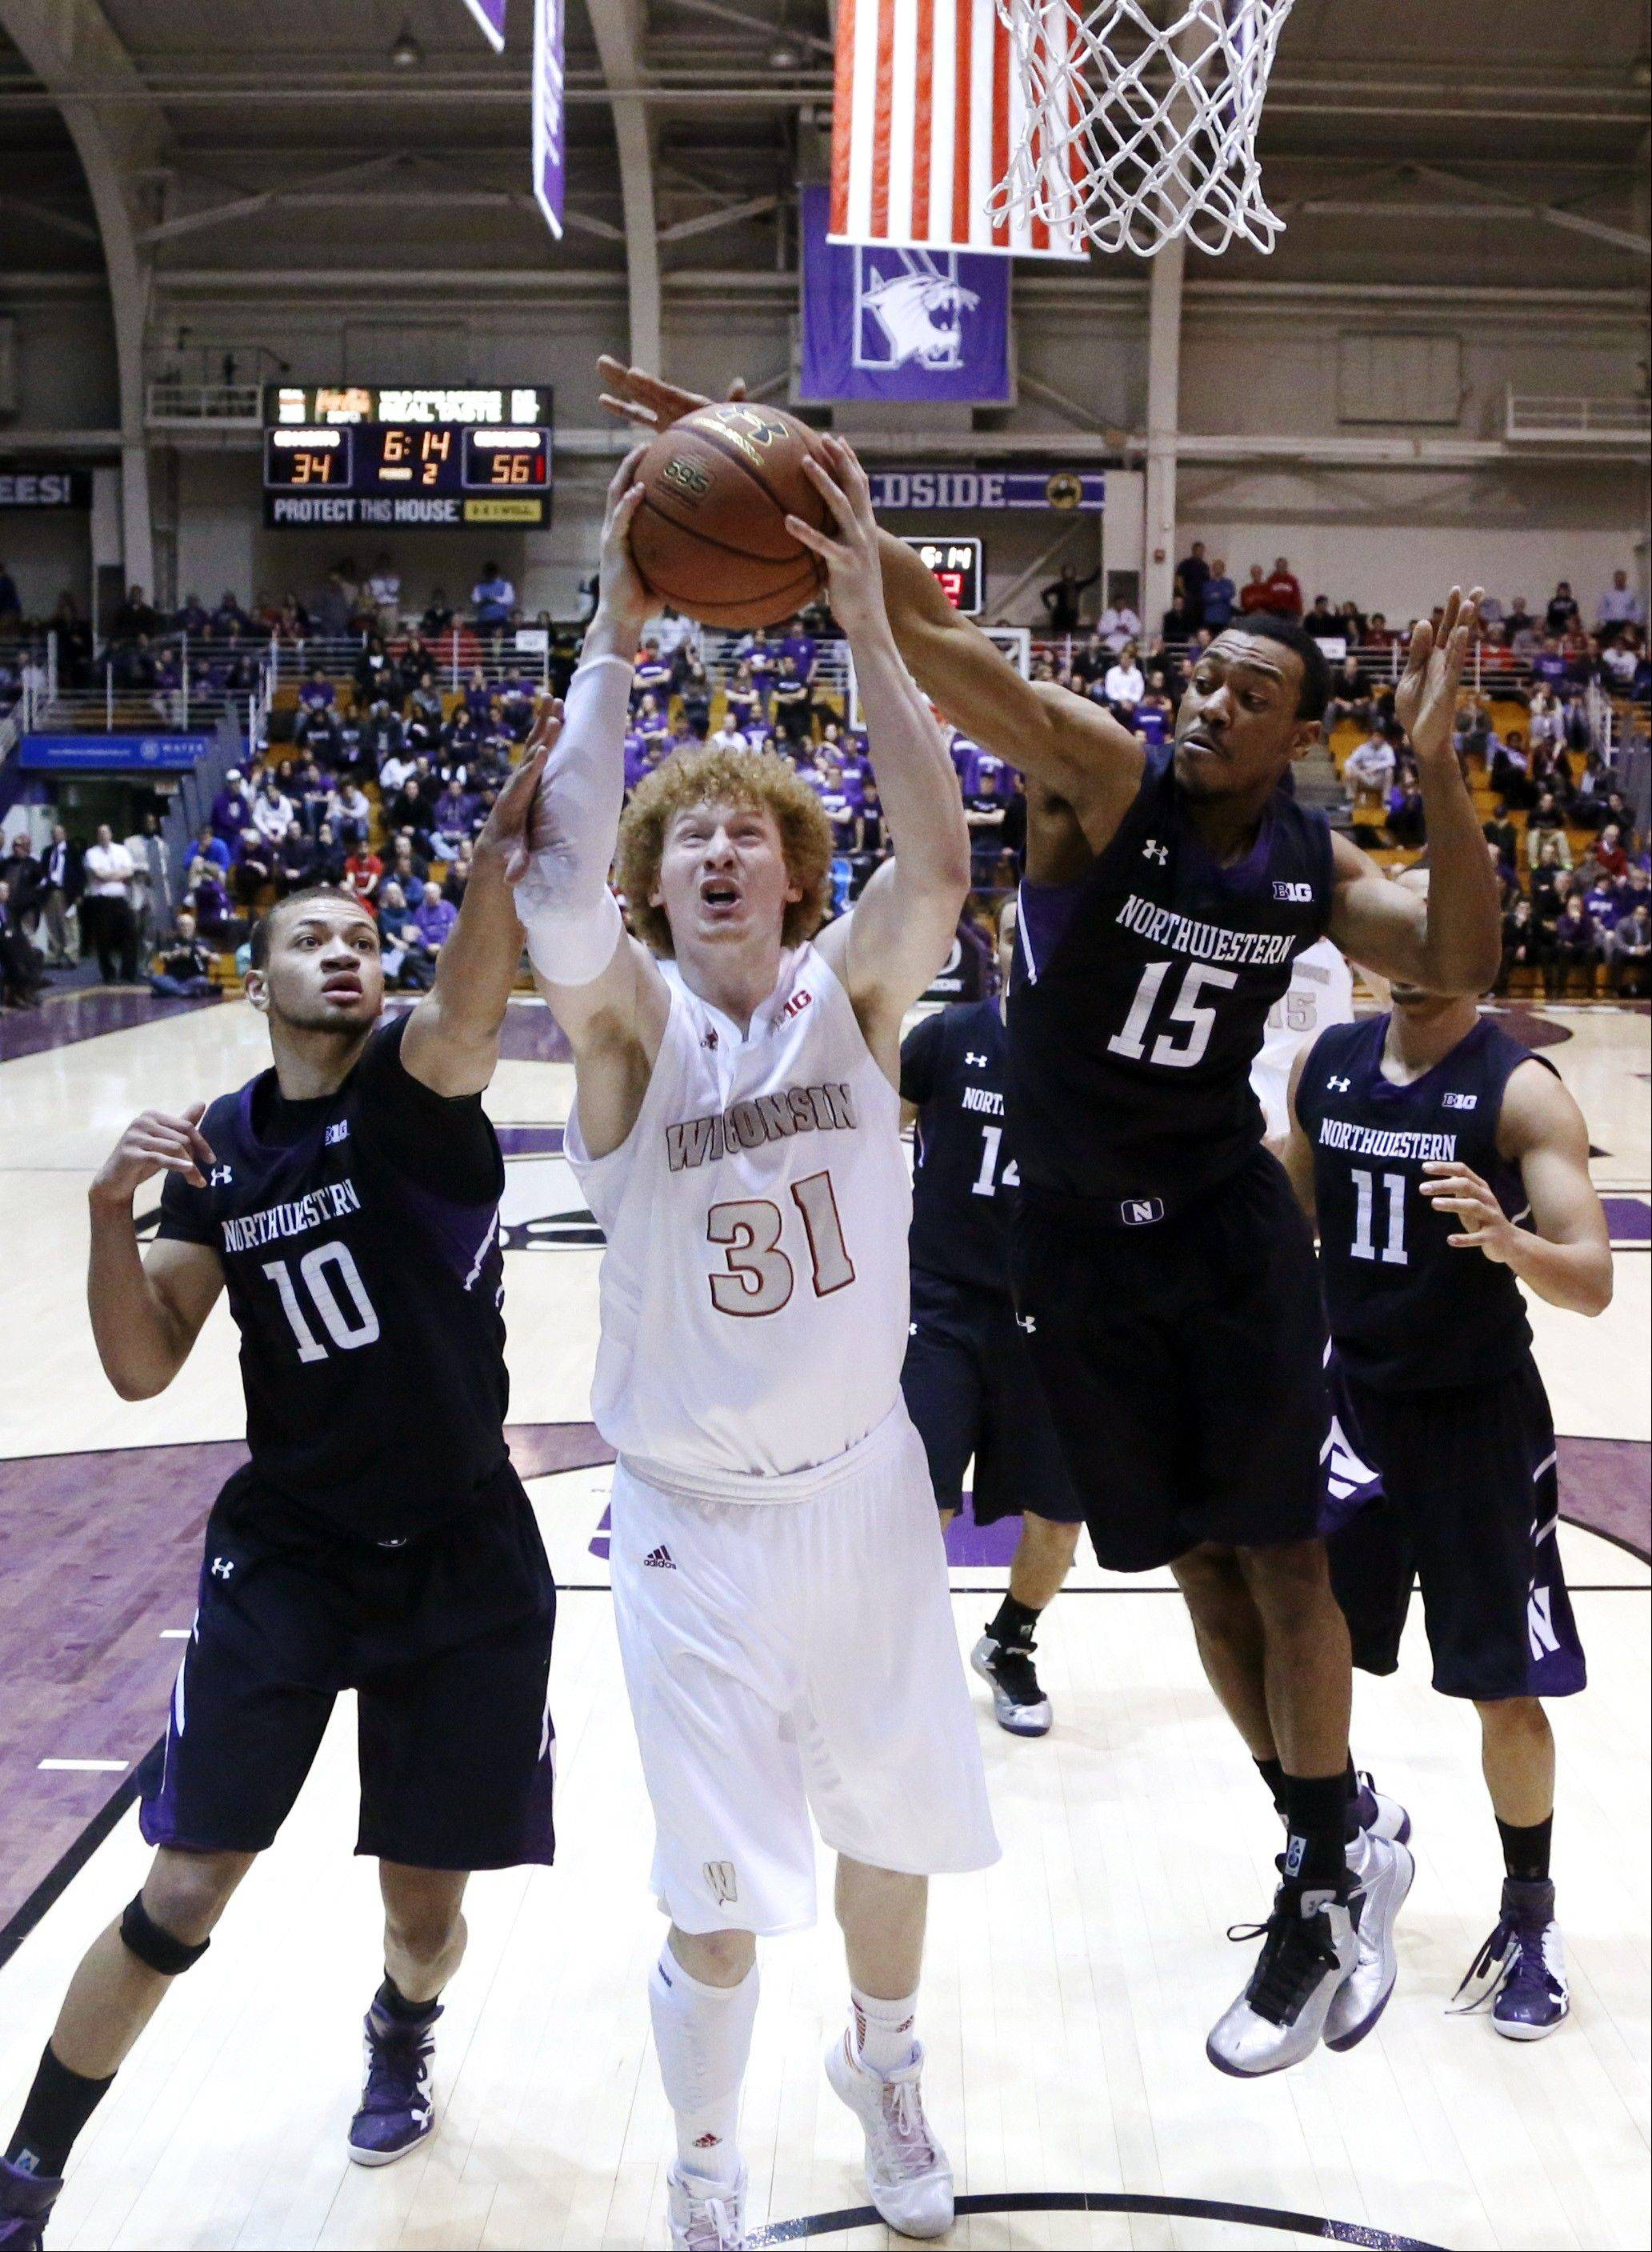 Wisconsin forward Mike Bruesewitz (31) is fouled as he shoots between Northwestern's Mike Turner (10) and James Montgomery III (15) during the second half of an NCAA college basketball game, Wednesday, Feb. 20, 2013, in Evanston, Ill. Wisconsin won 69-41. (AP Photo/Charles Rex Arbogast)